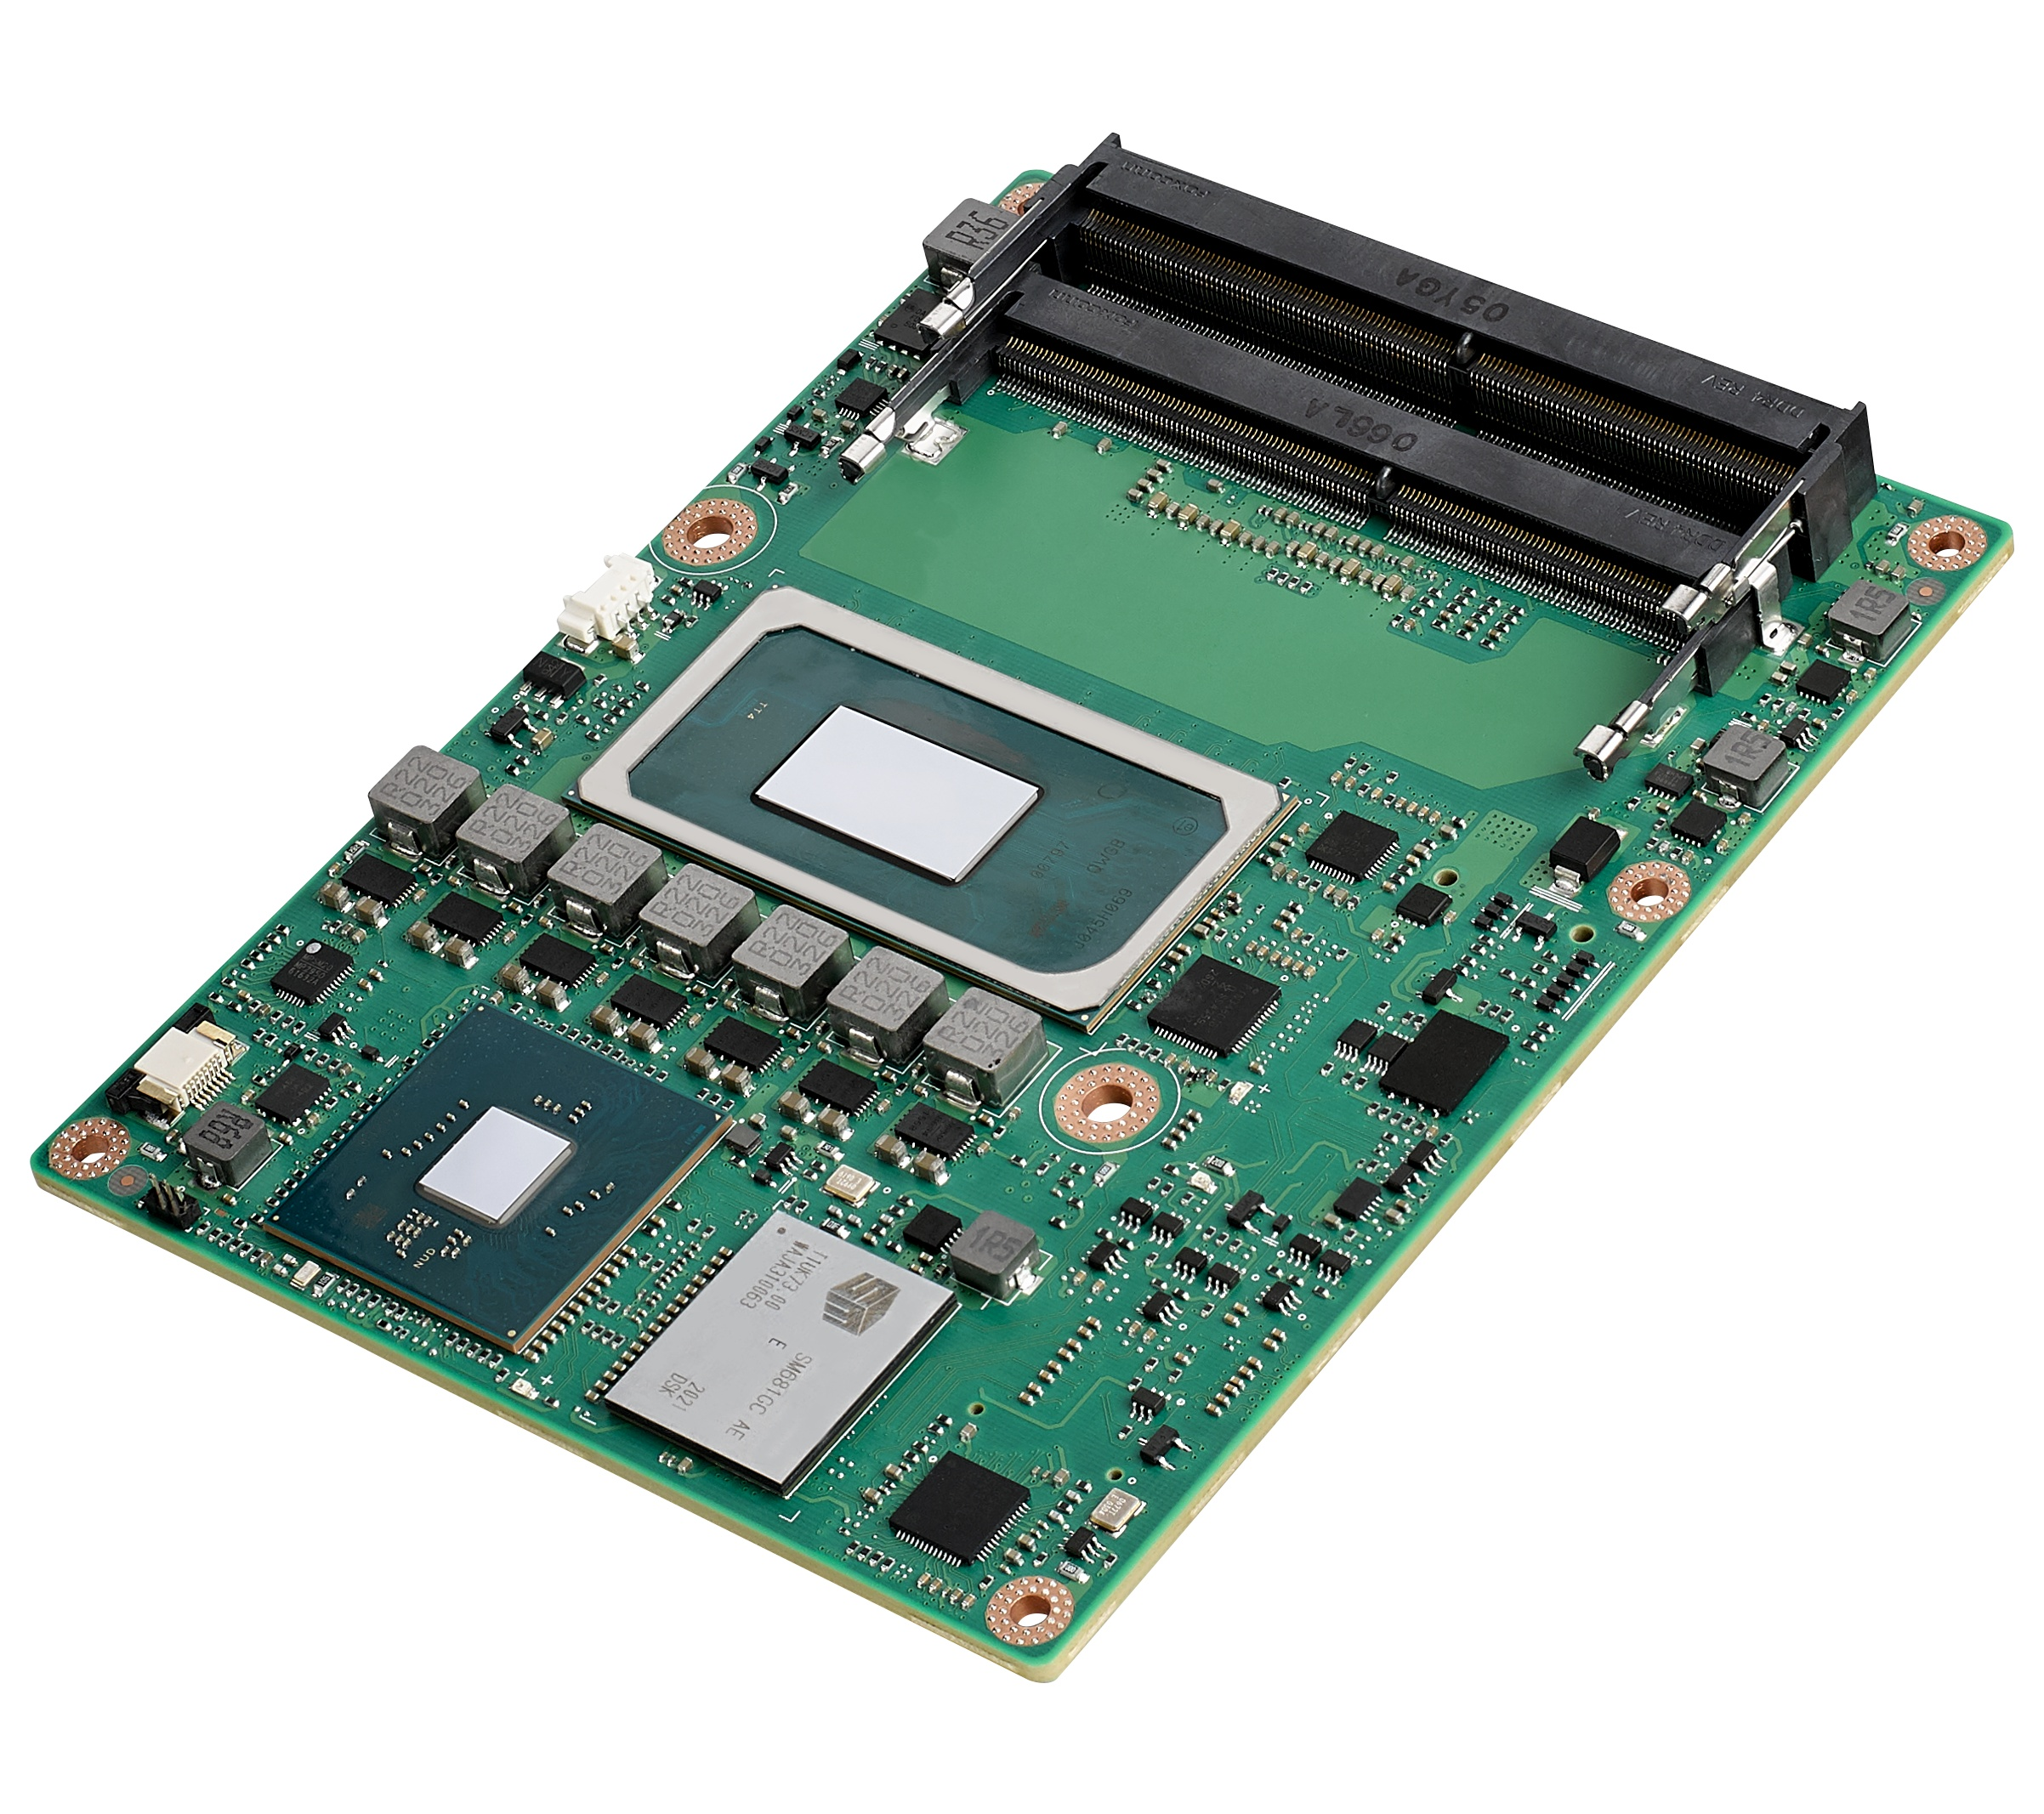 SOM-5883 with 11th Gen. Intel® Core™ Processors Empower Breakthrough Performance and Next Gen. I/O Expansion